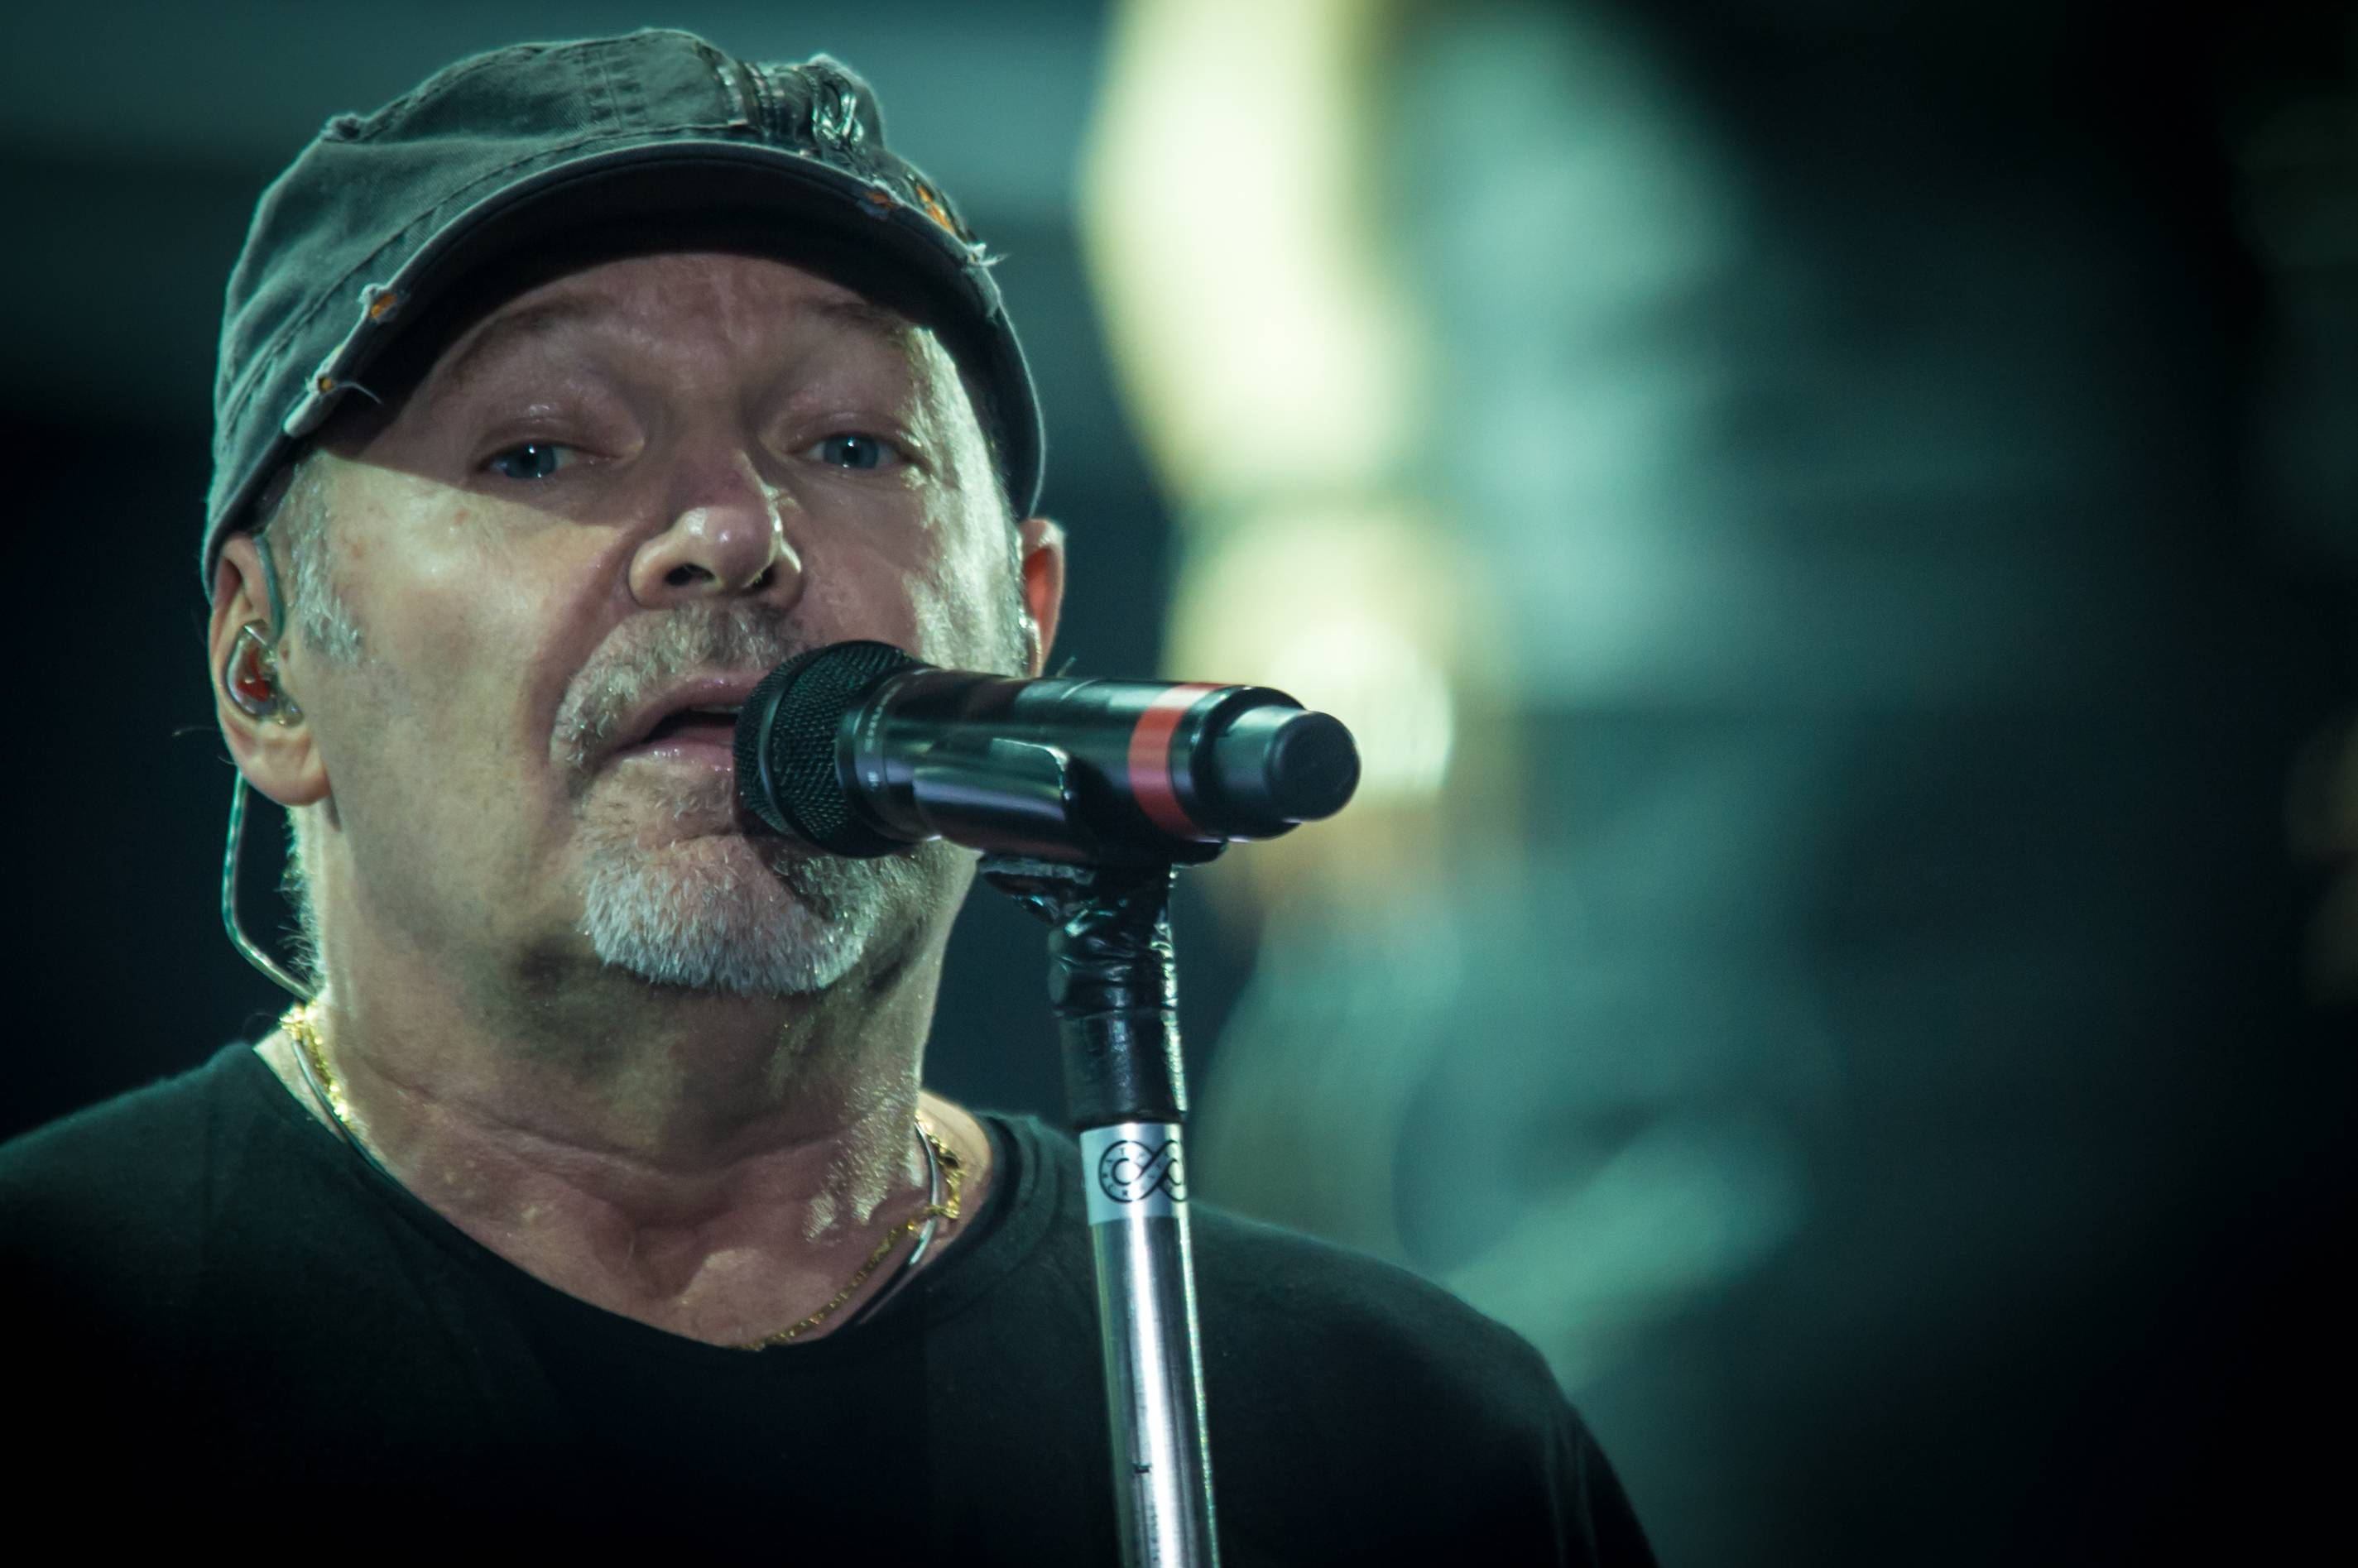 Vasco Date Vasco Rossi Tour Dates 2016 2017 Concert Images